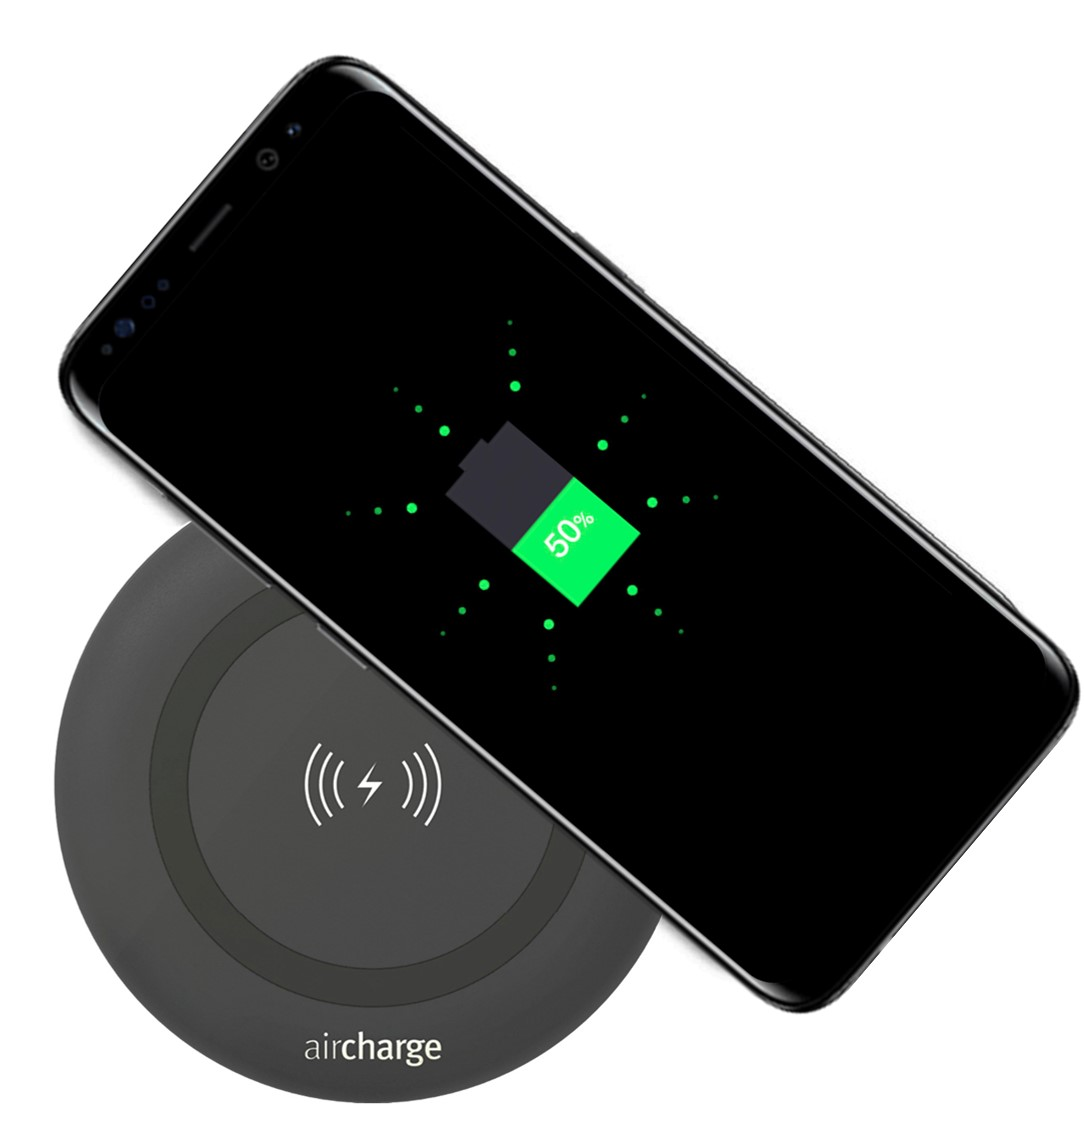 aircharge samsung galaxy s8 and s8 plus feature qi. Black Bedroom Furniture Sets. Home Design Ideas